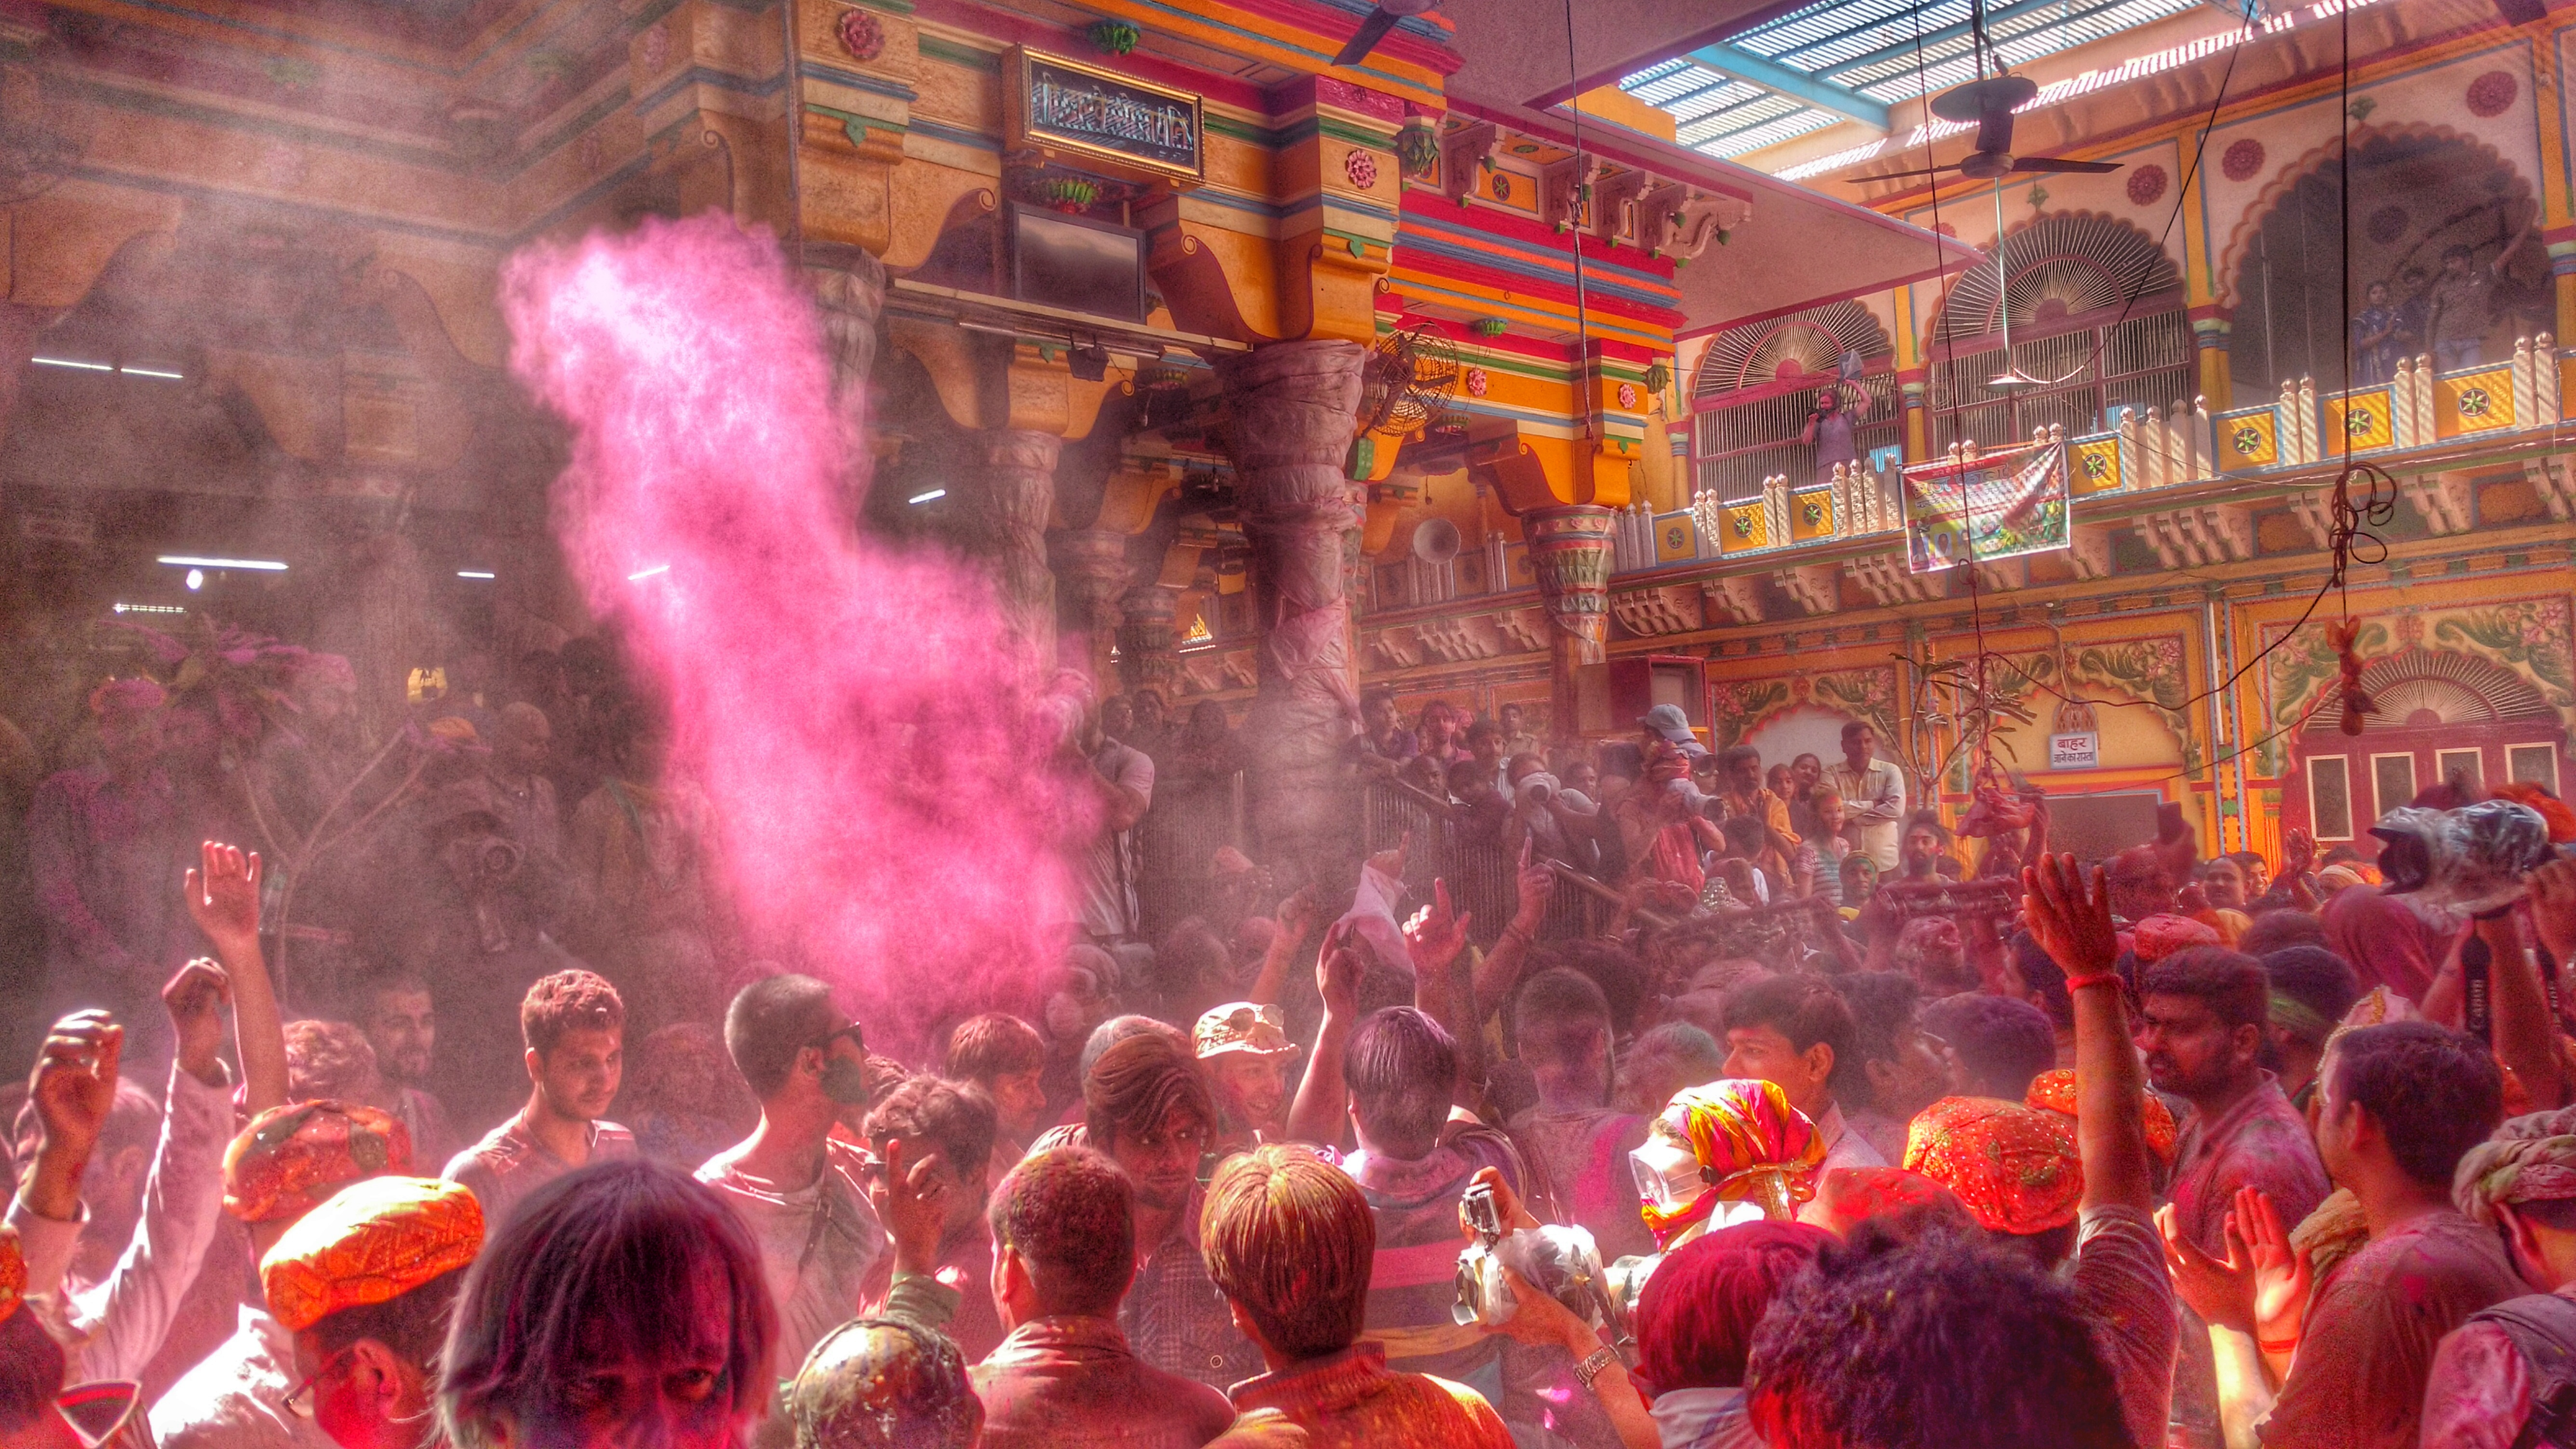 The colorful Dwarkadheesh Temple and its vibrant devotees in a jovial mood